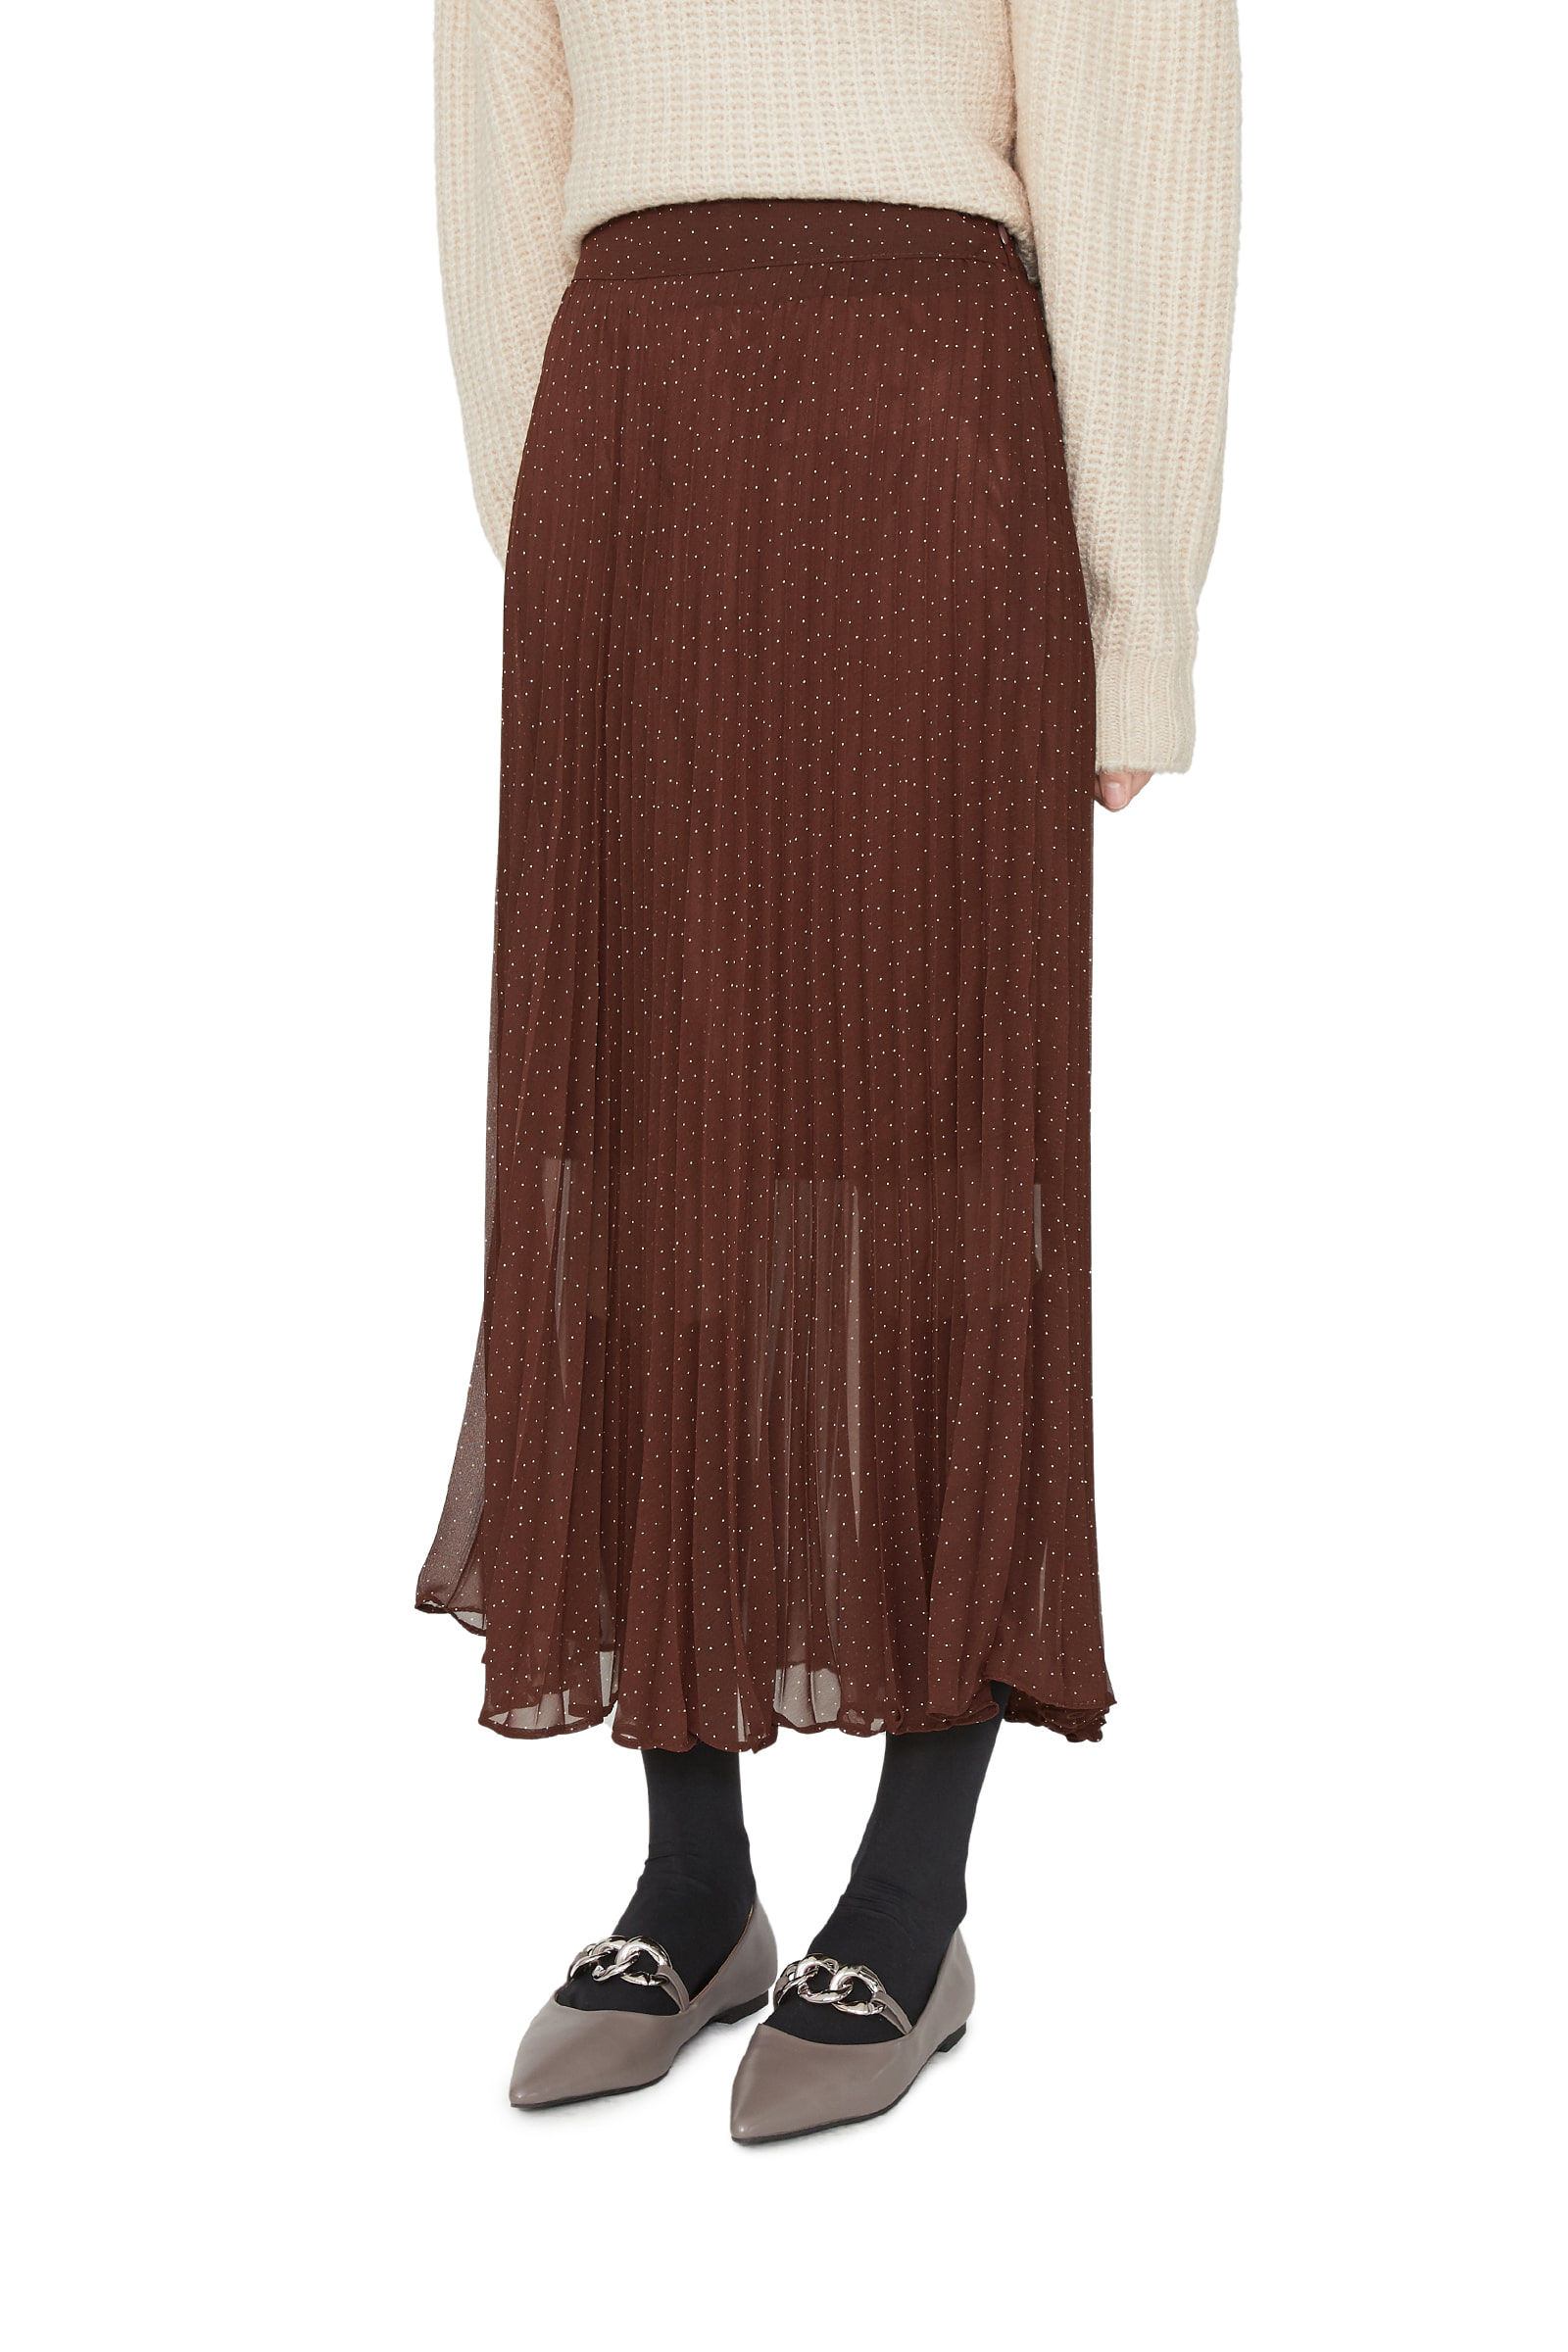 EVEN pleated maxi skirt